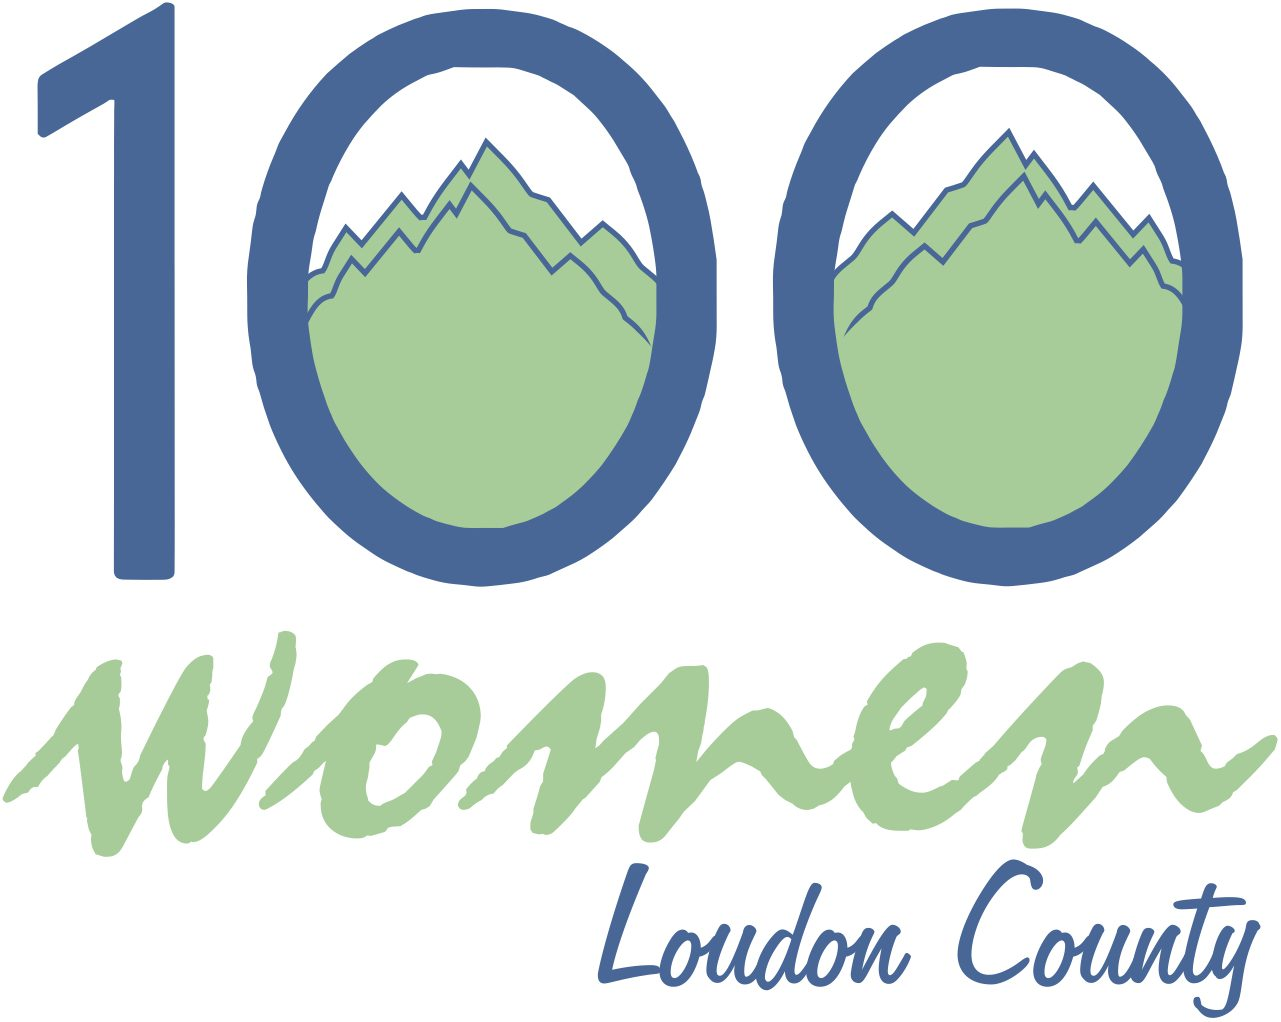 100 Women Loudon County